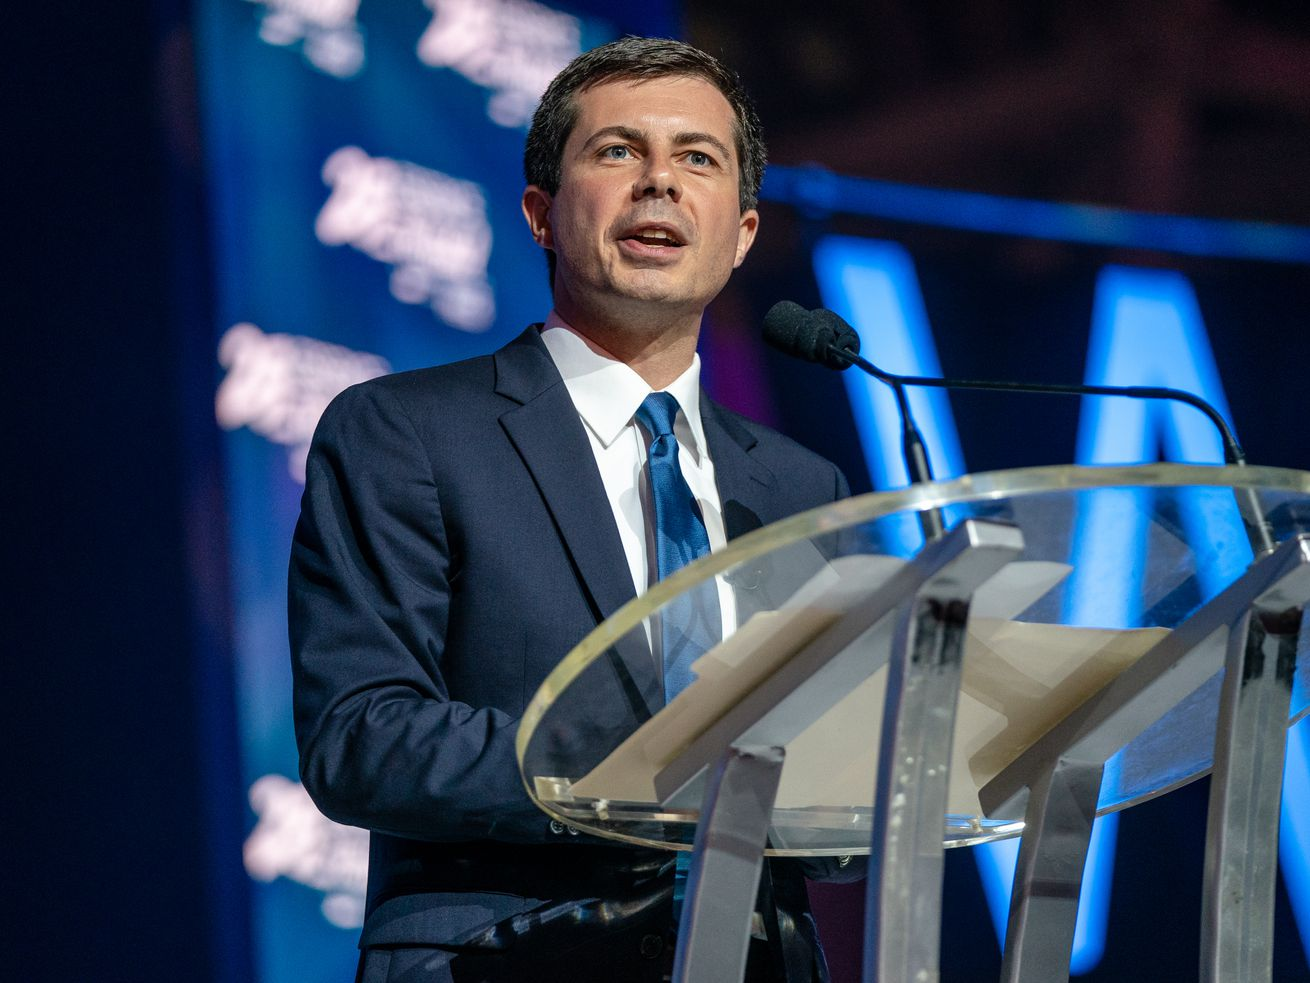 Pete Buttigieg lays out his plan to help black Americans - The Reports